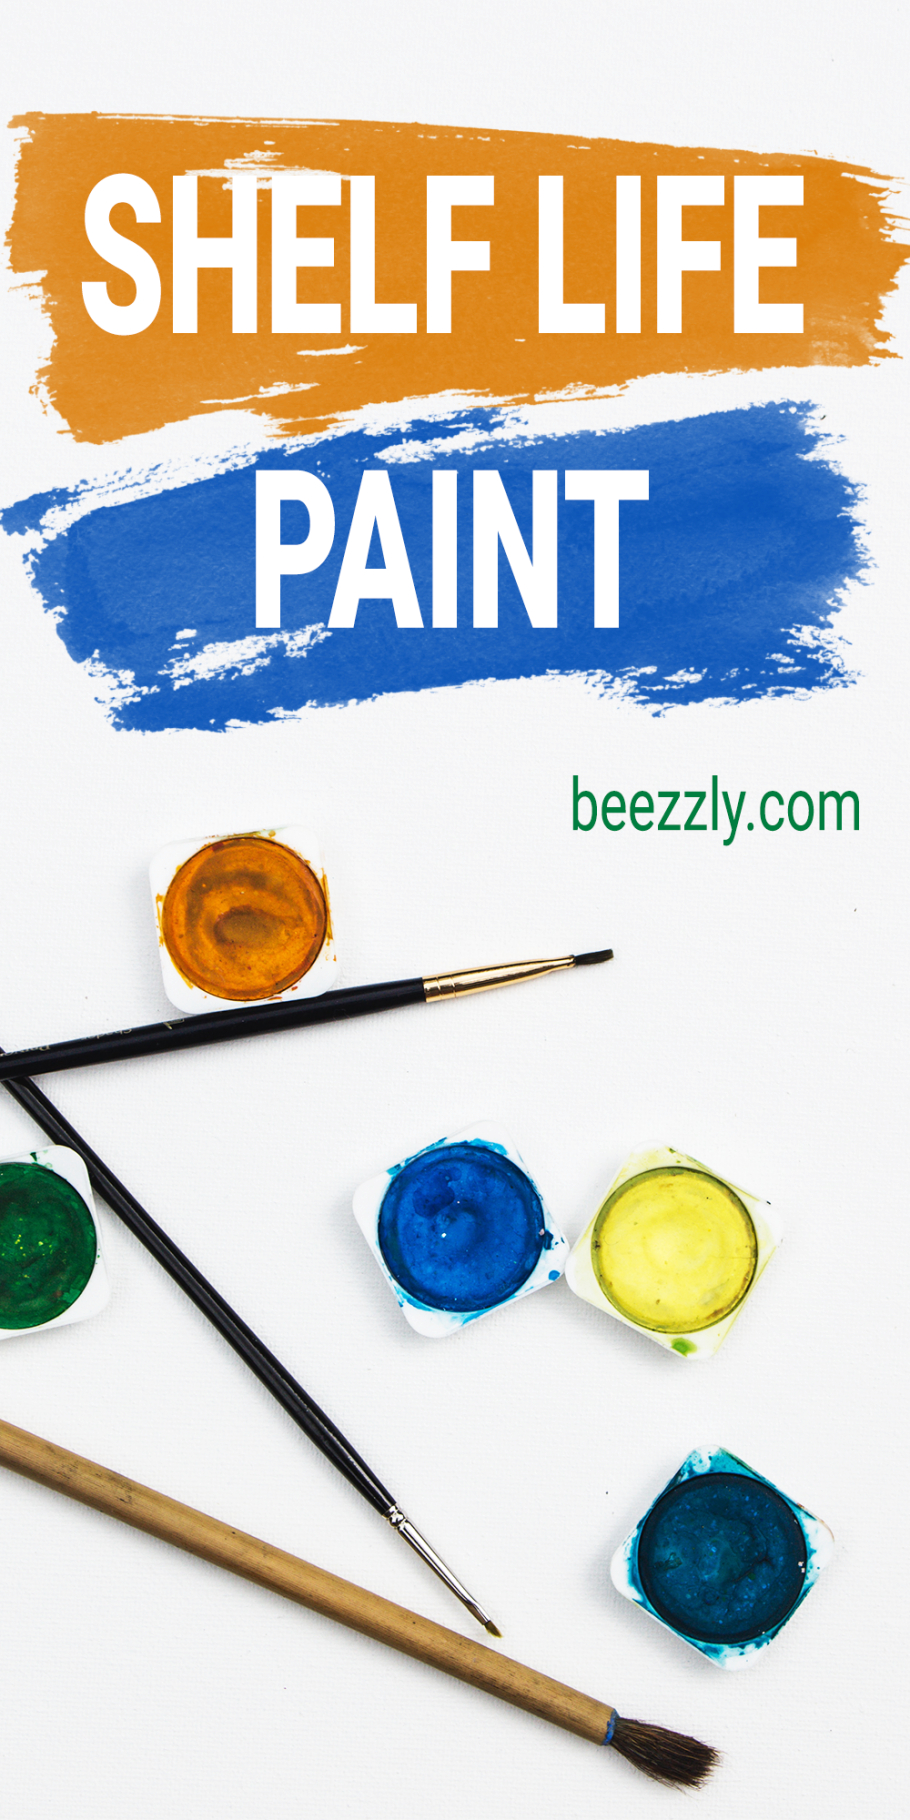 Shelf Life Paint💥 In 2020 | Diy Household Tips, Paint within How Long Is Paint Good For